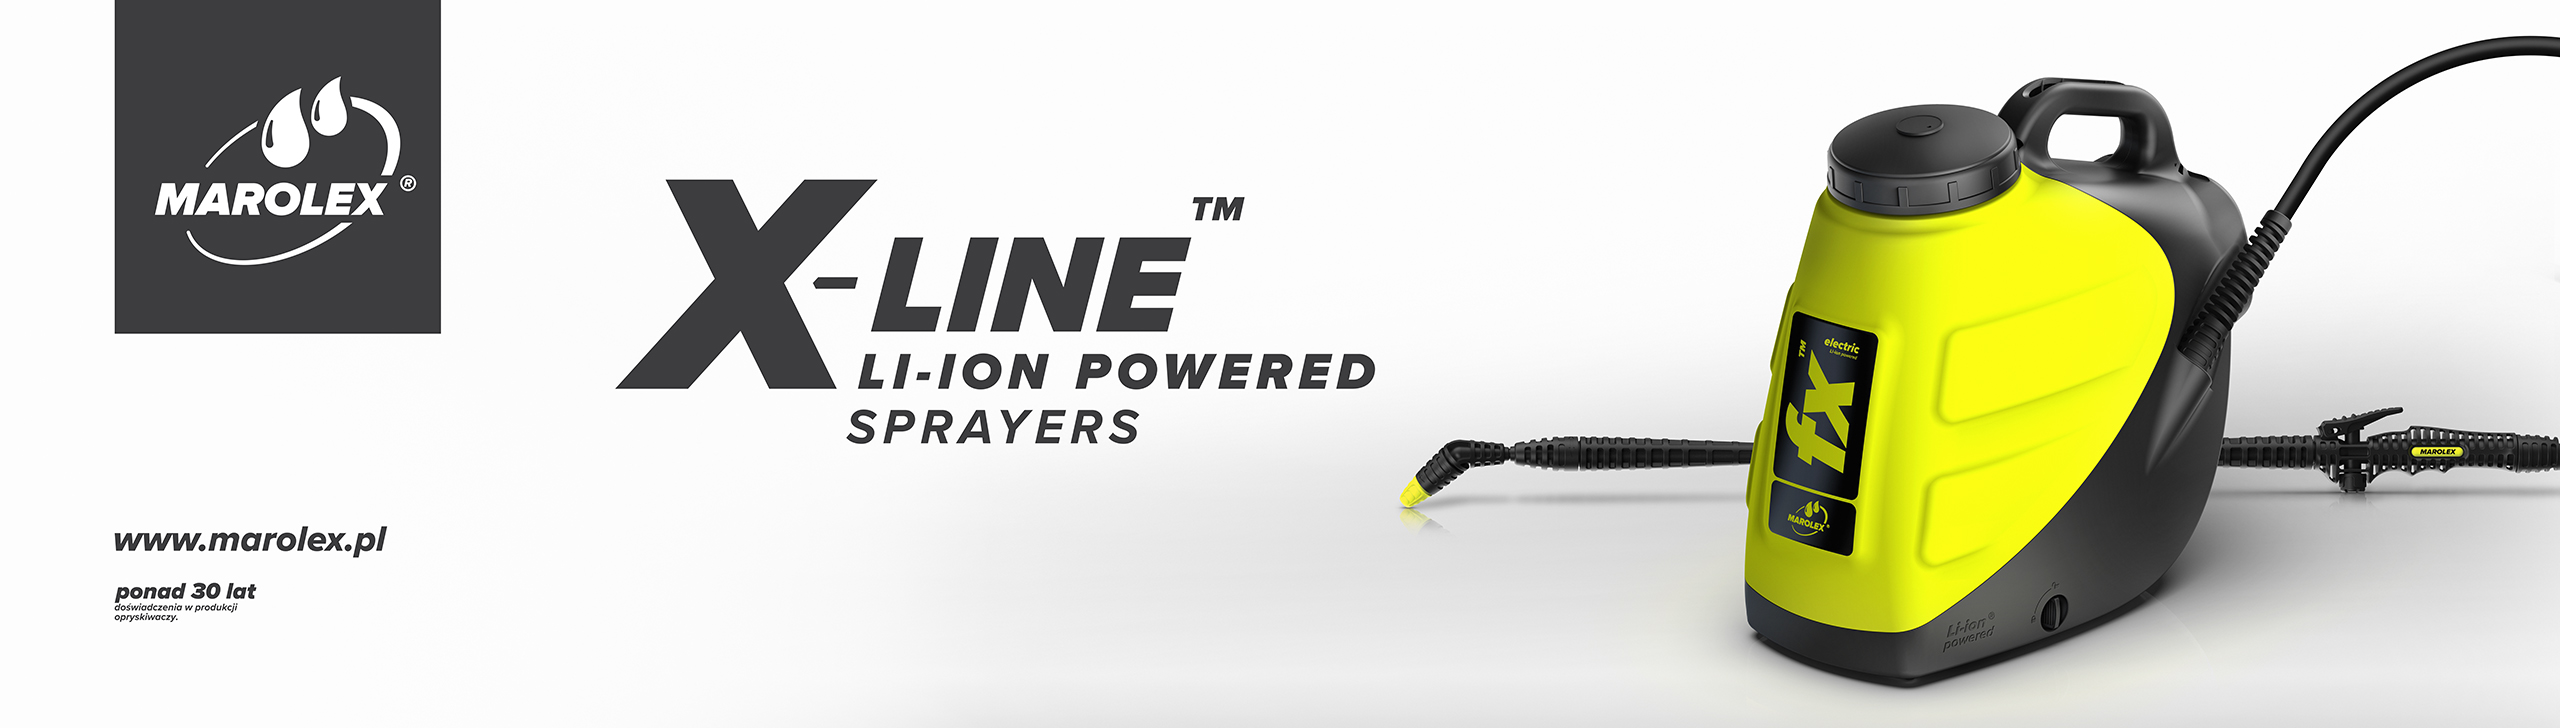 marolex fx x-line electric sprayer